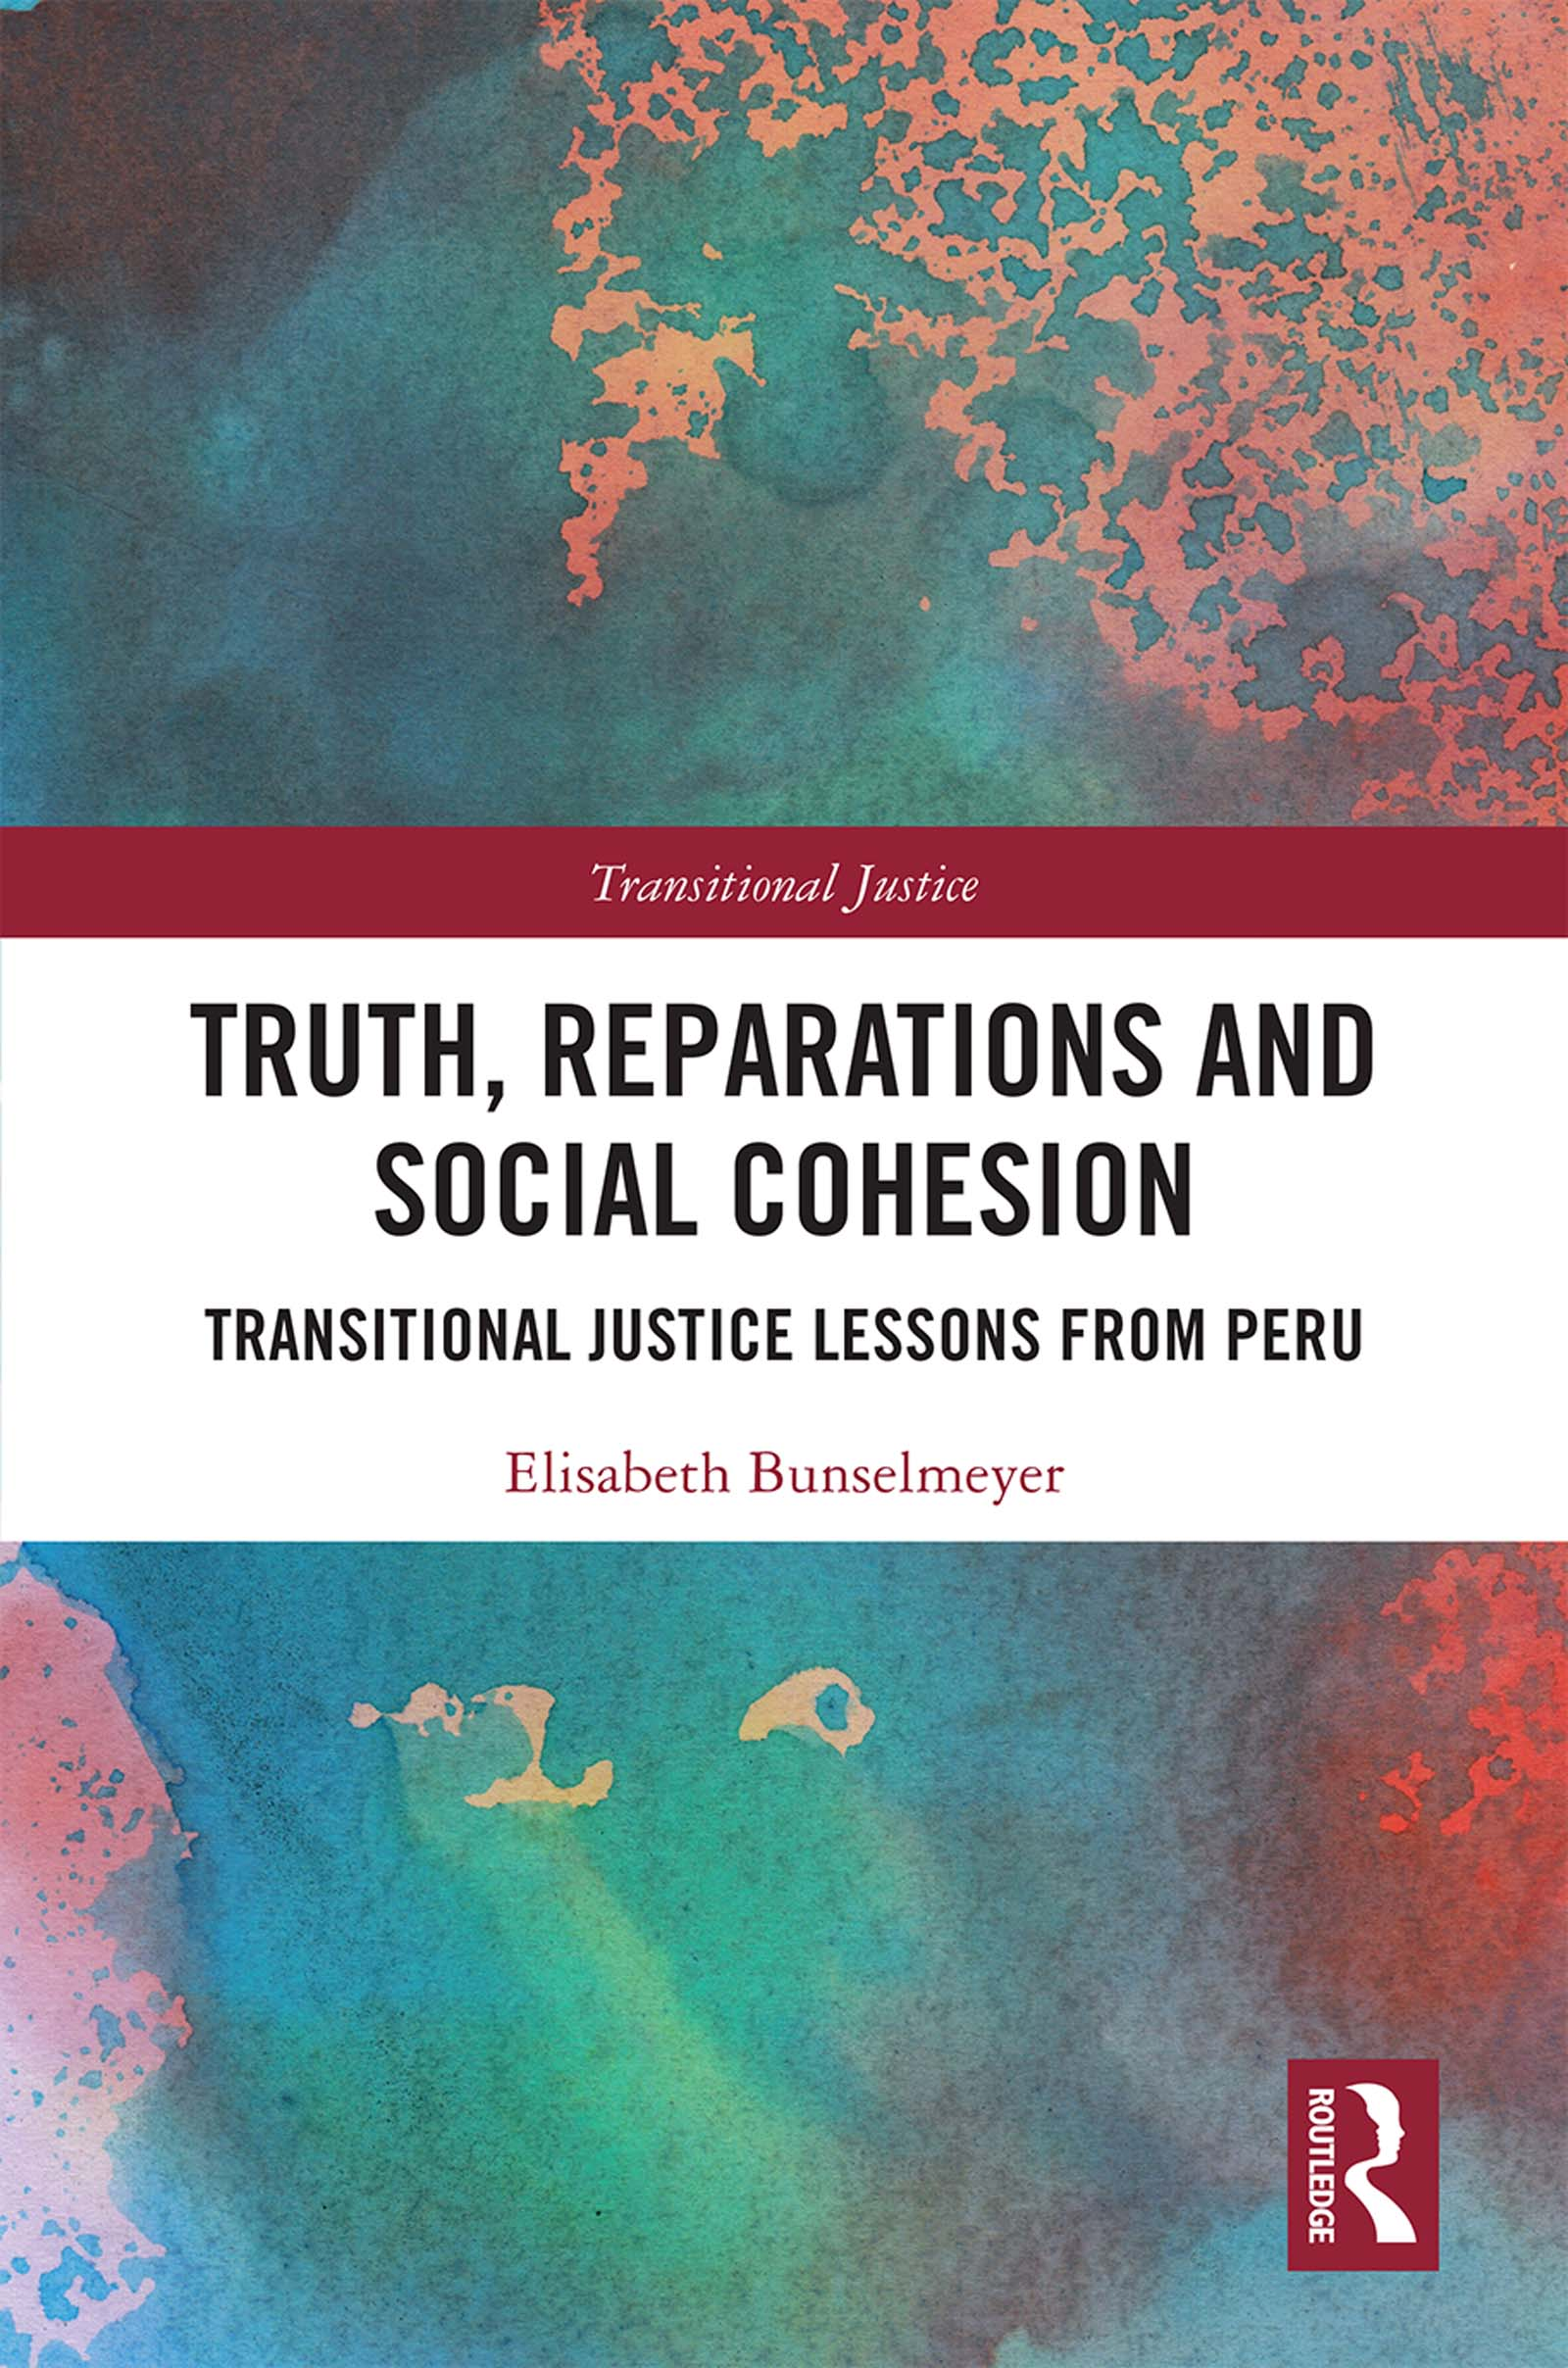 Truth, Reparations and Social Cohesion: Transitional Justice Lessons from Peru book cover